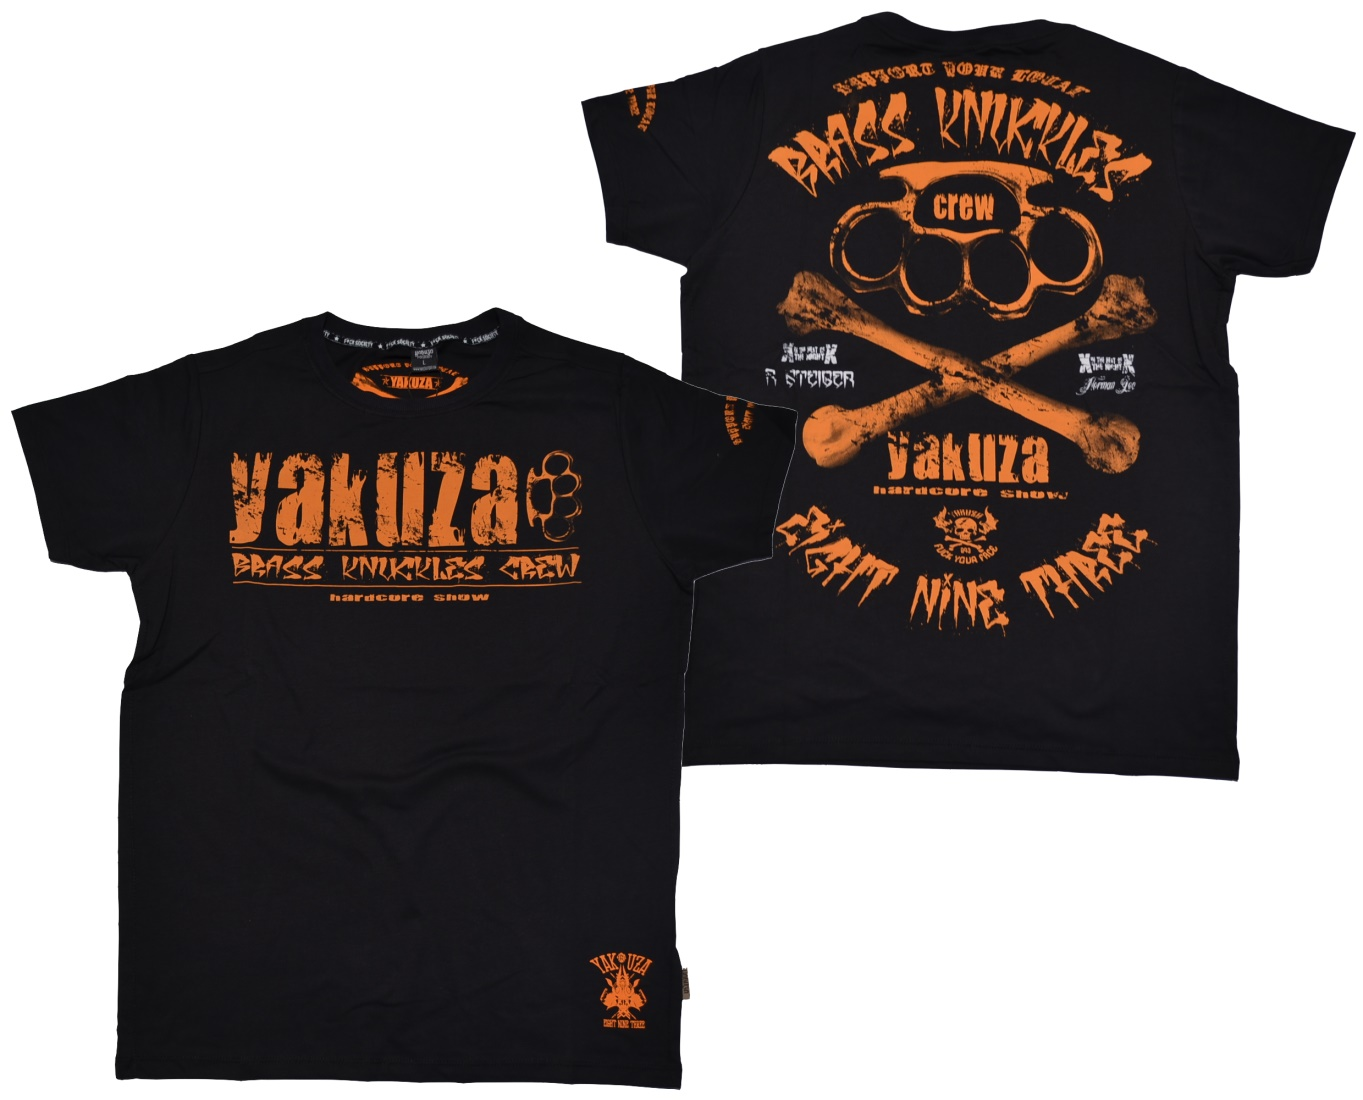 Yakuza Ink T-Shirt Bras knuckles crew